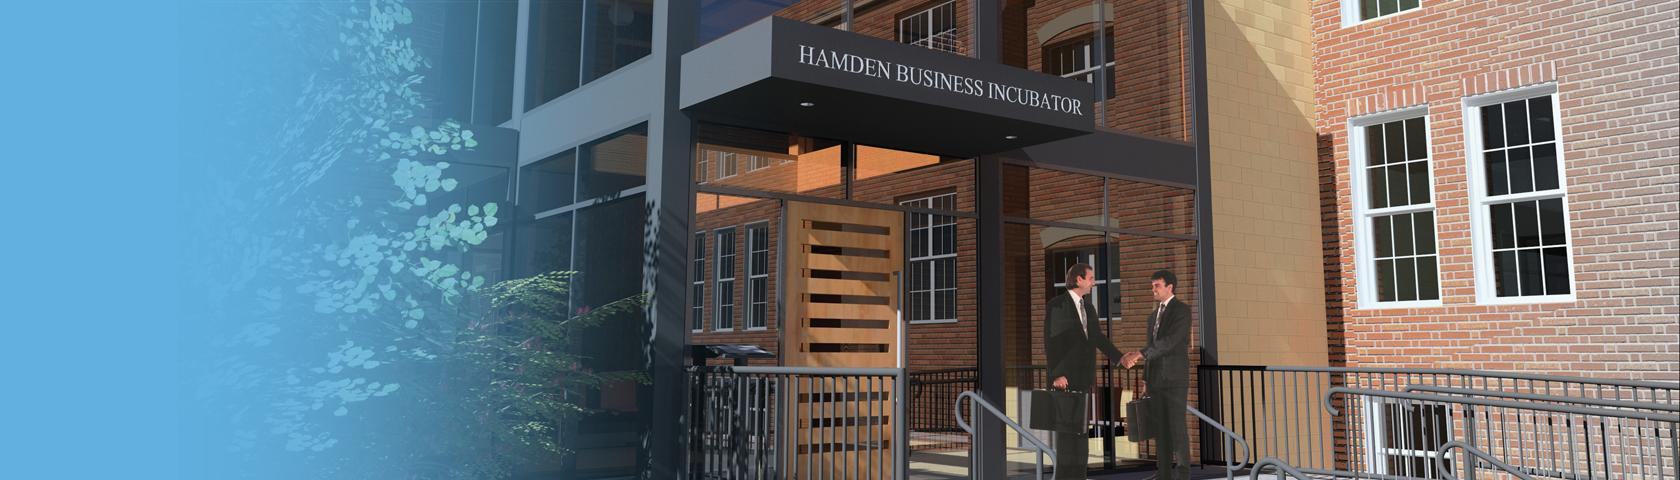 Hamden Business Incubator